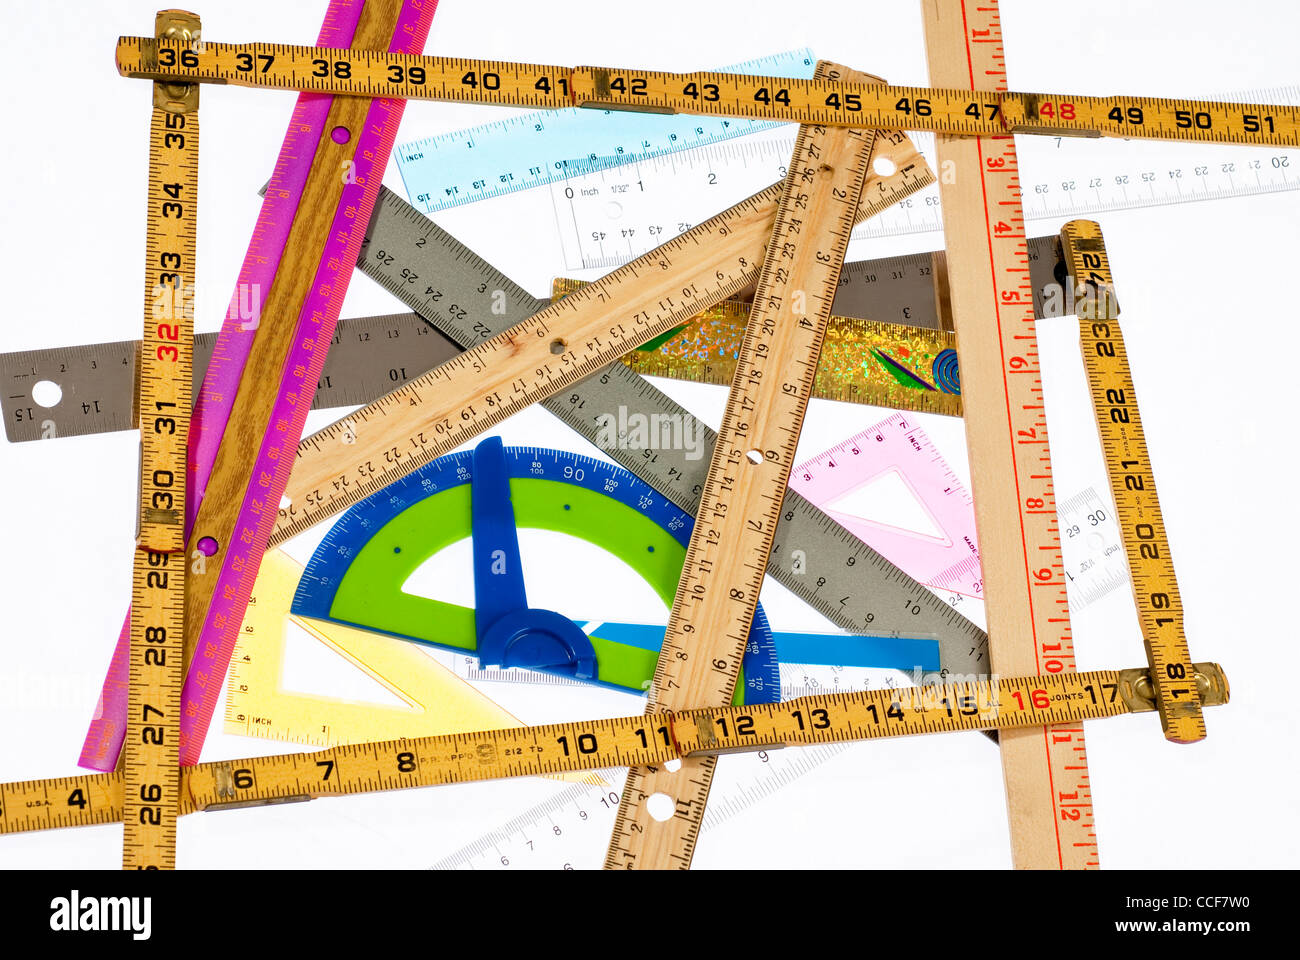 A collection of different rulers - Stock Image